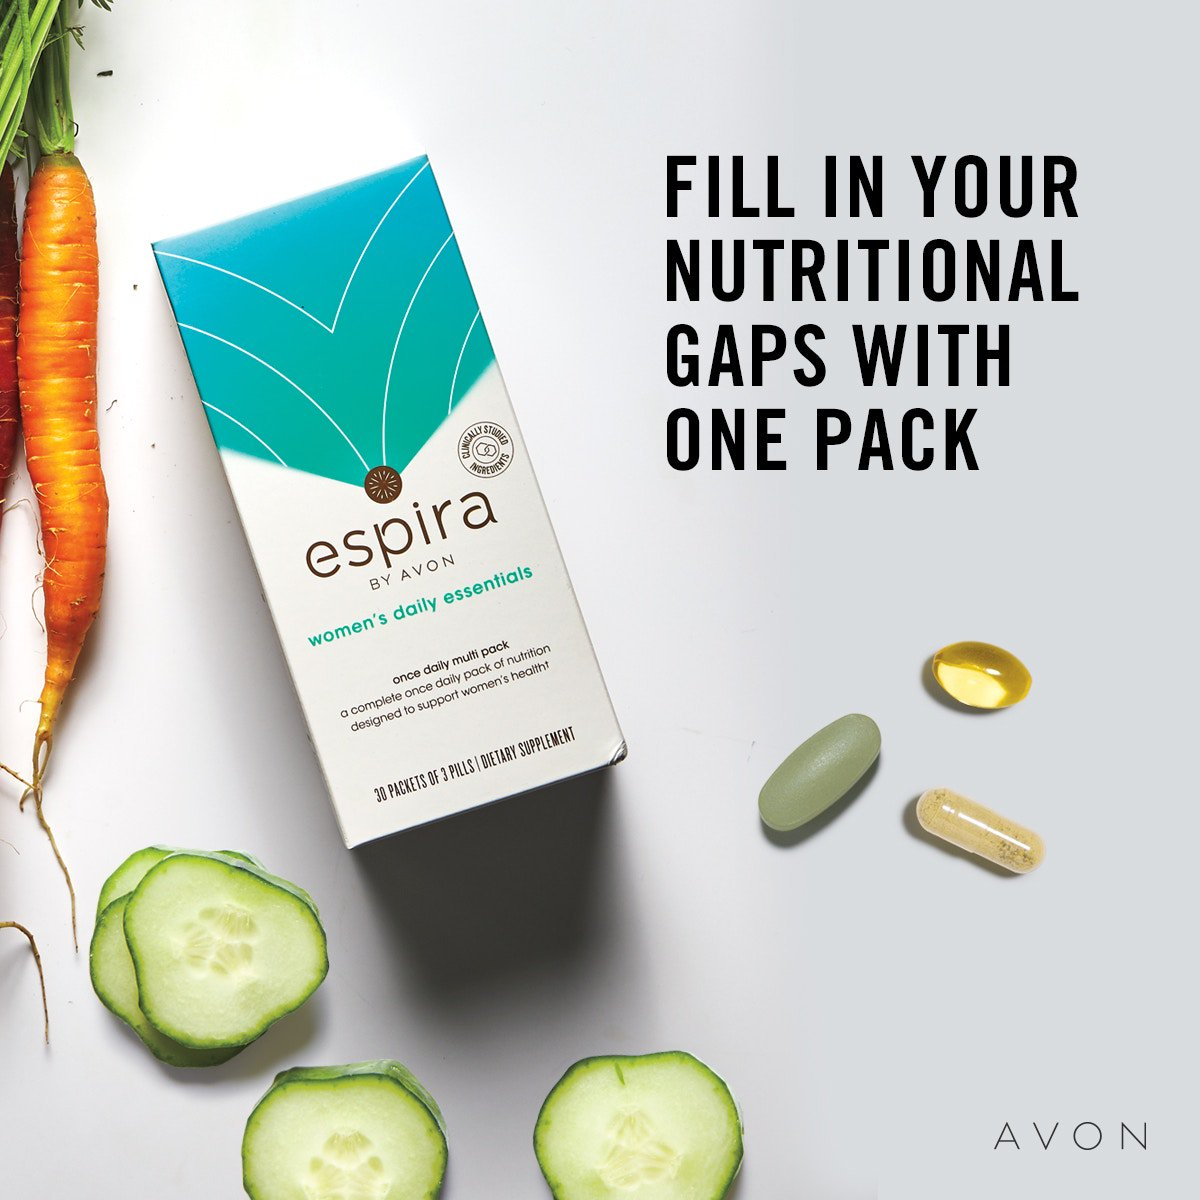 Fill in your nutritional gaps with one pack. #Healthy#spa #beauty #relax #health #wellness #yoga #massagetherapy #love #meditation #natural #lifestyle #selfcare #Espira #DailyEssentials http://go.youravon.com/3crn4d